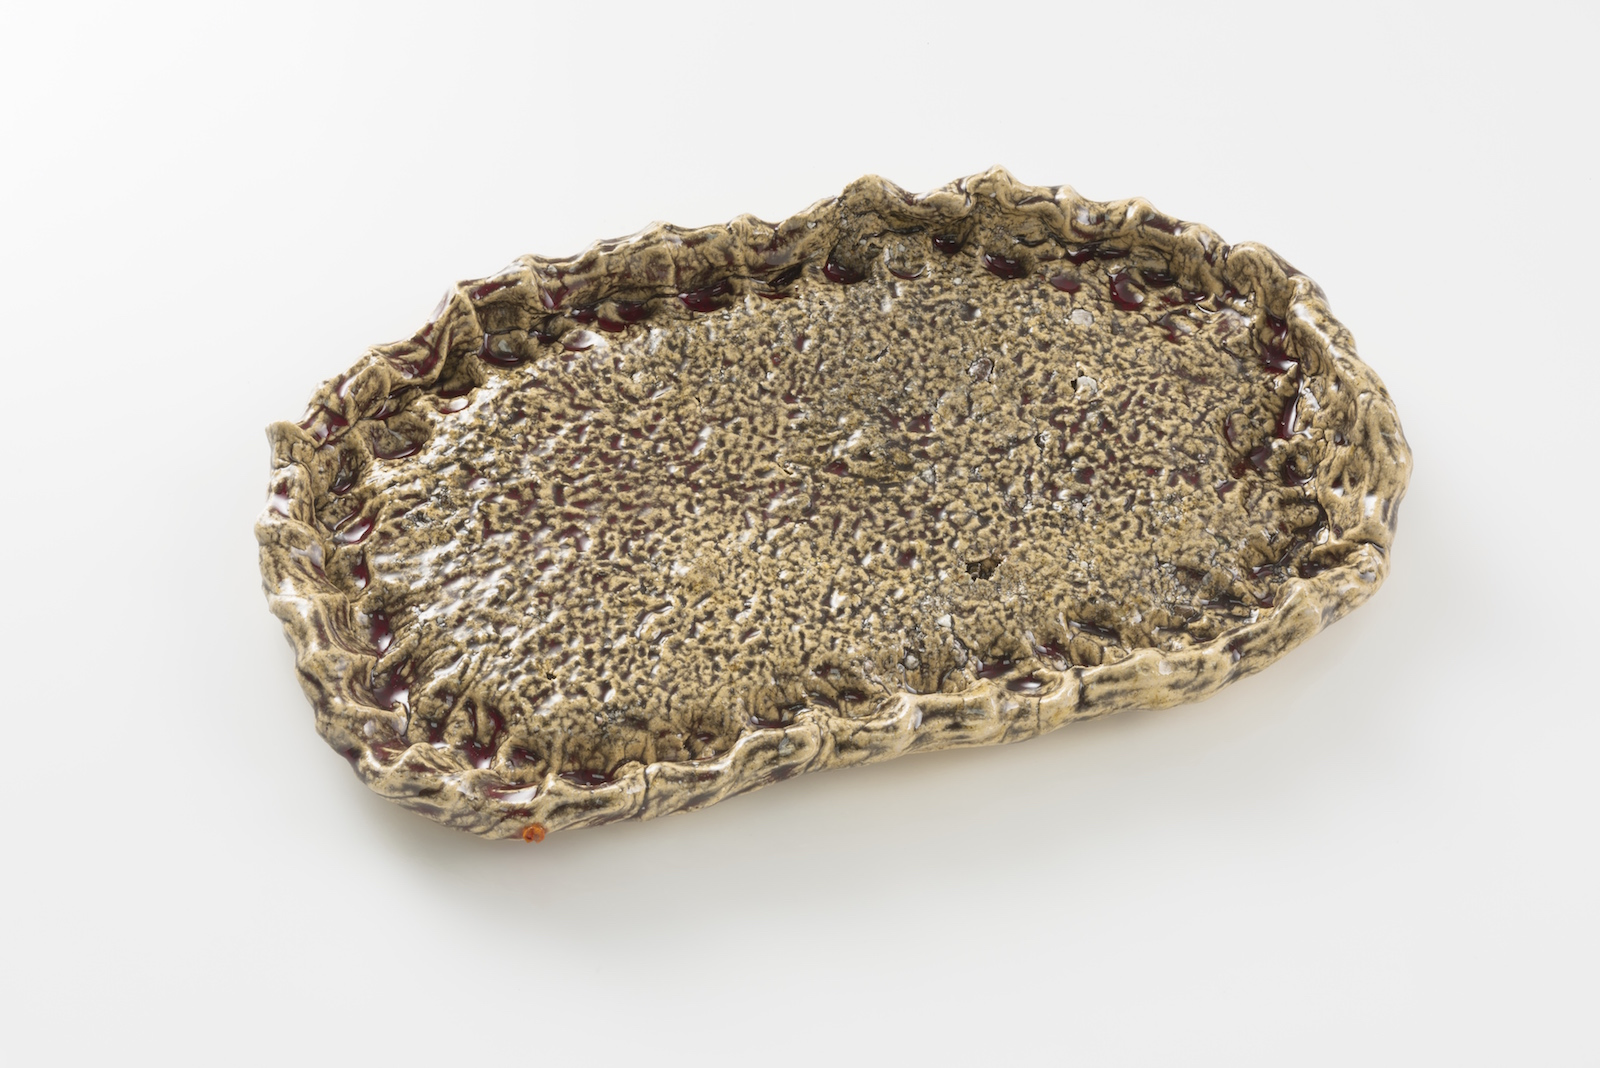 Ashtray 385, 2016